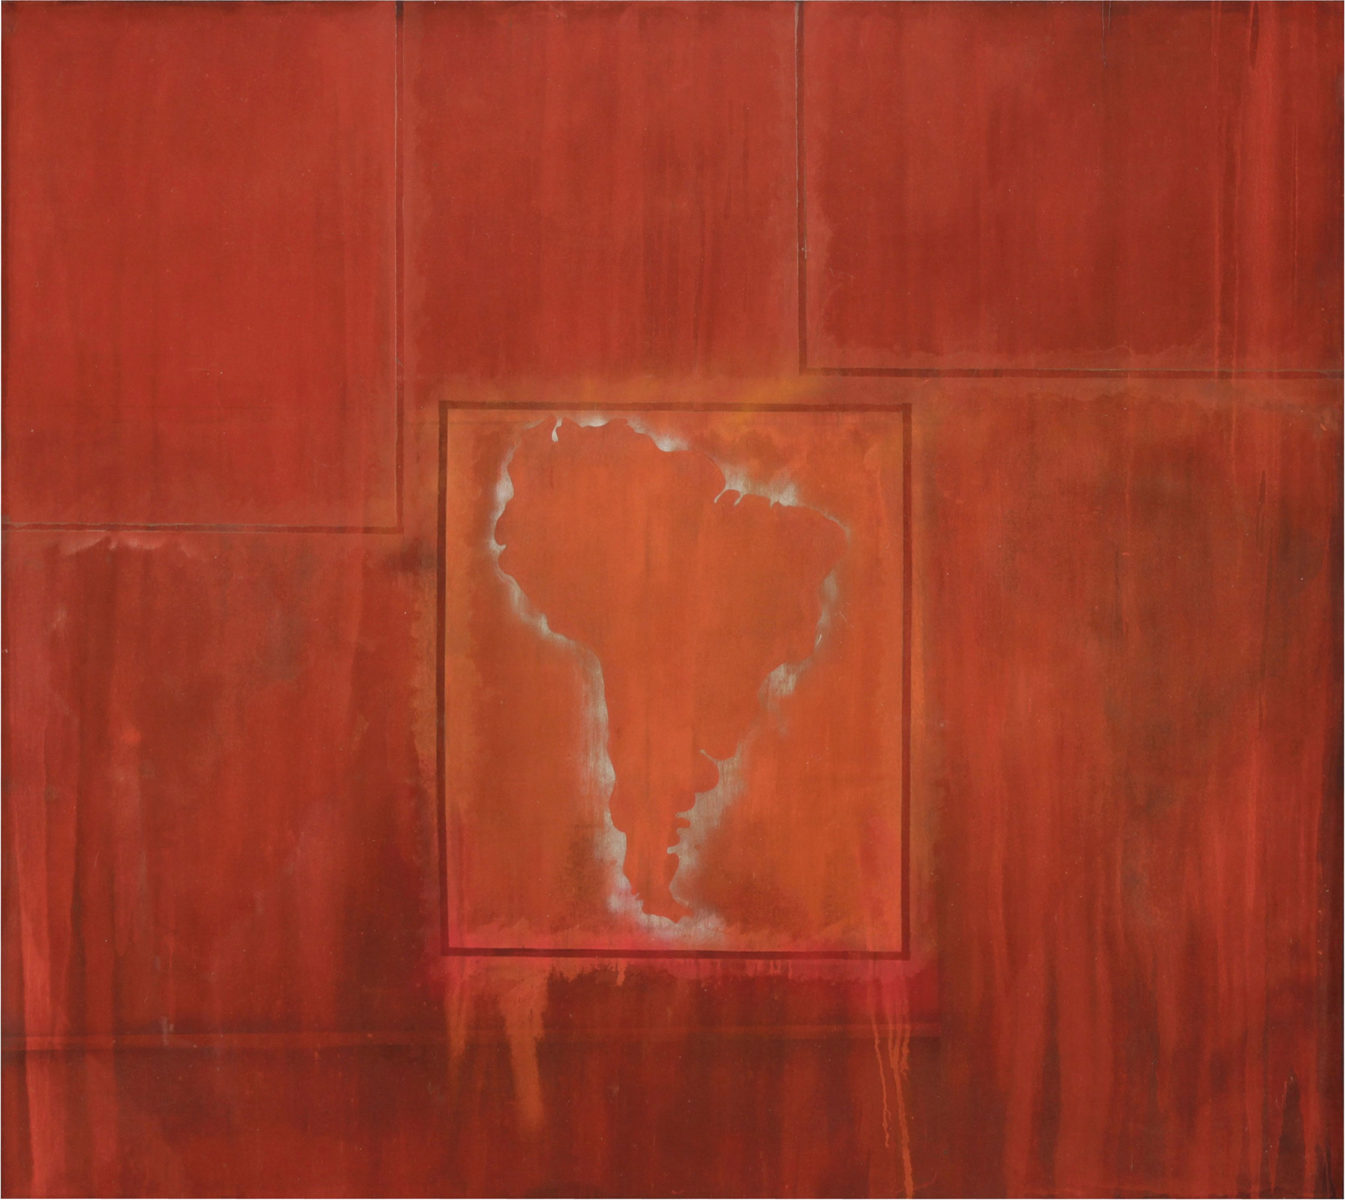 Frank Bowling, South America Squared, 1967, acrylic on canvas. 243 x 274 cm